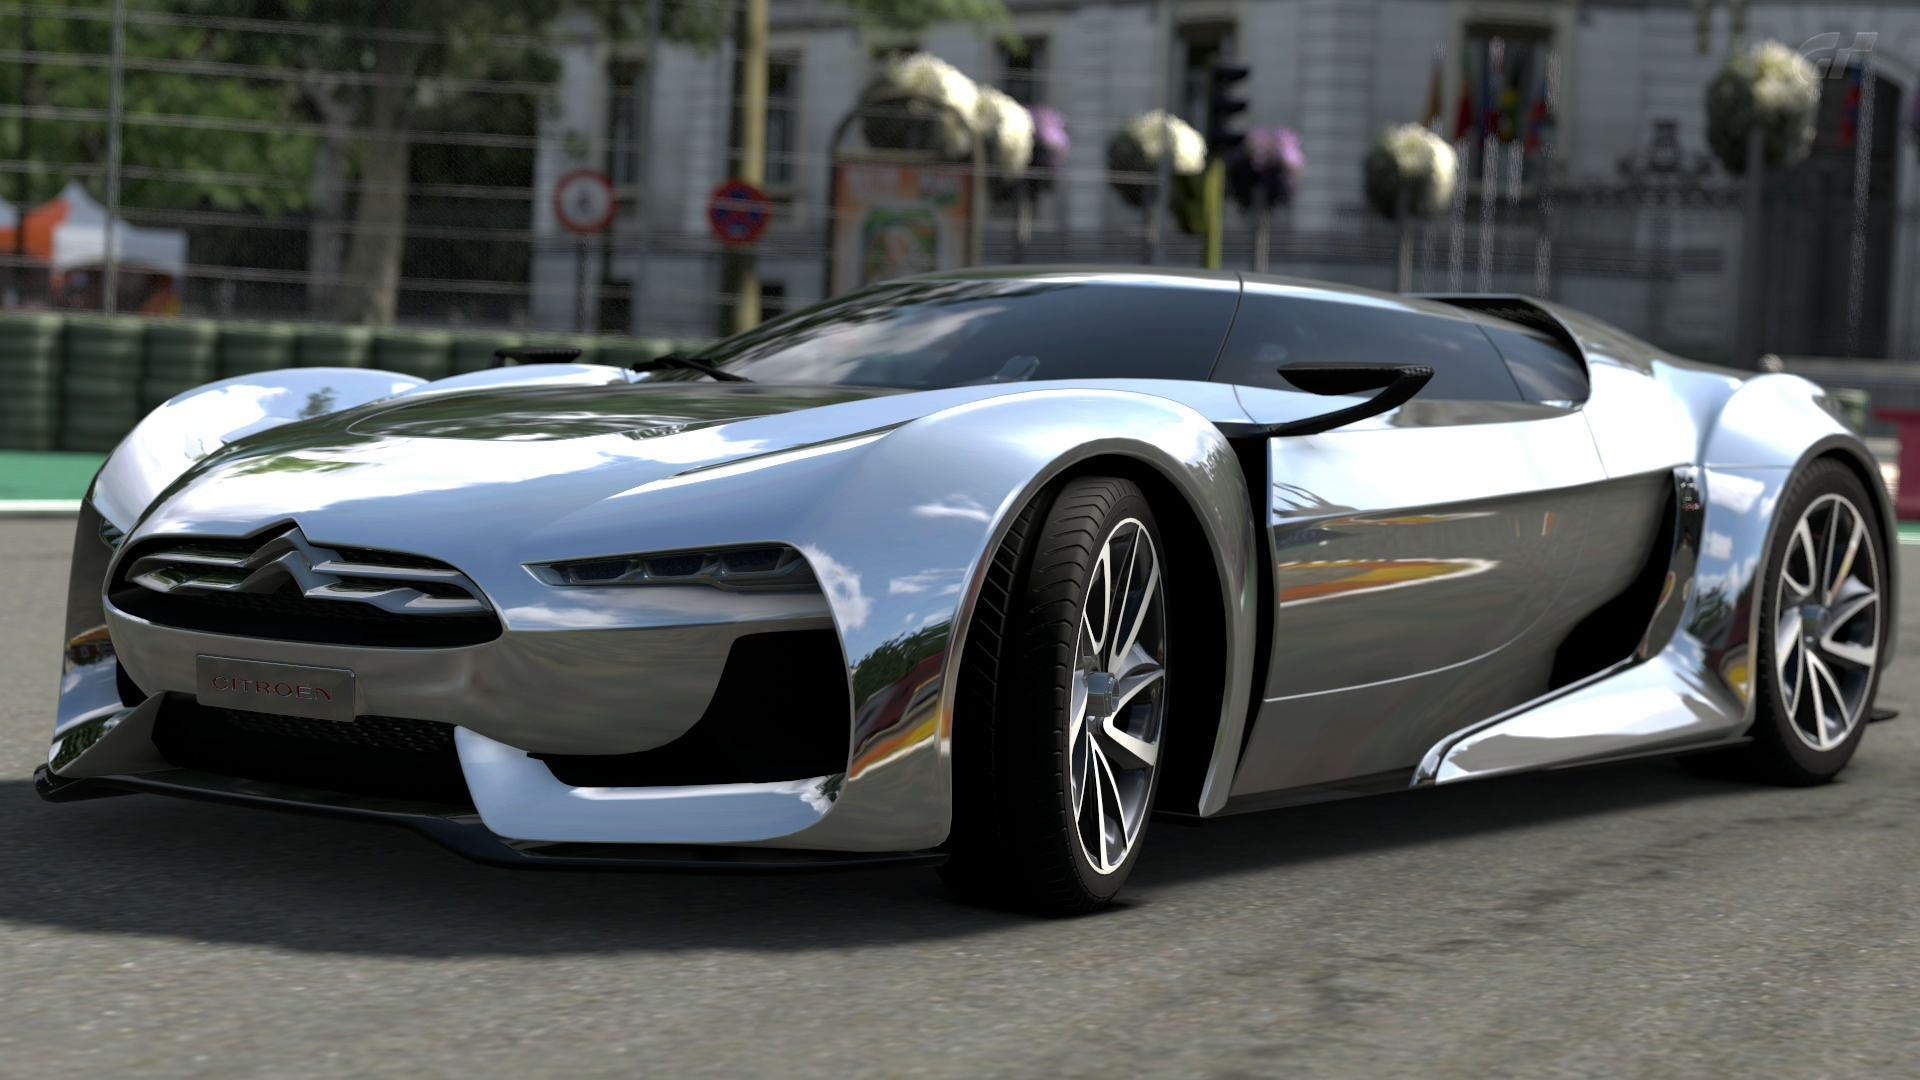 Top 10 Amazing Chrome Cars Who Said That Chrome Isn T In Trend See Our 10 Chromed Supercars Compilation That Will Blind You Chro Cars Chrome Cars Fancy Cars